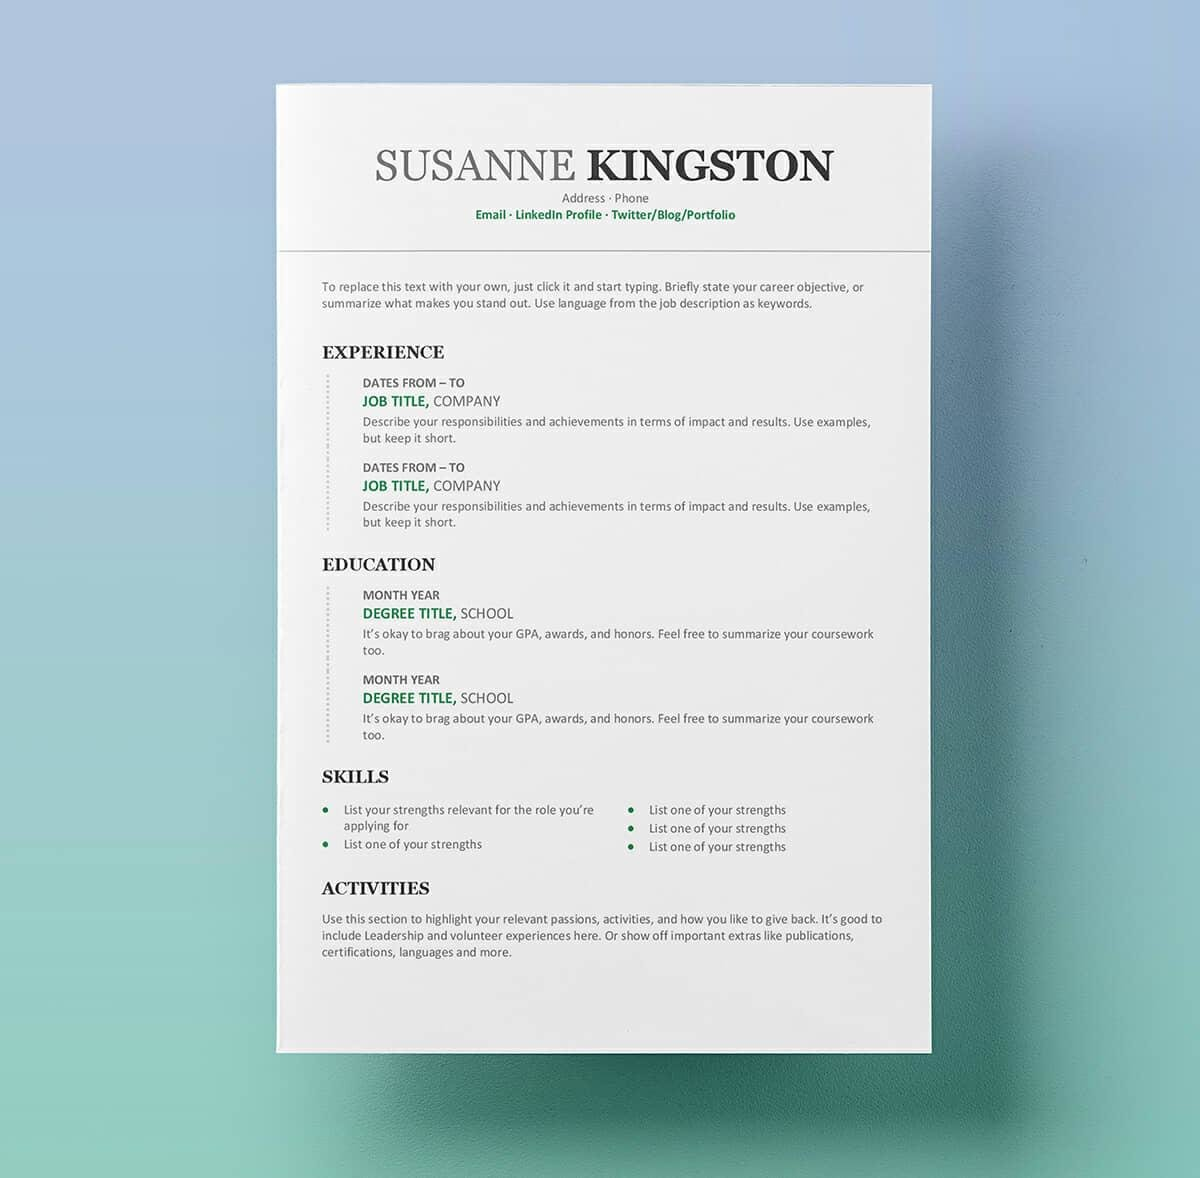 Resume templates for word free 15 examples for download microsoft word resume with green details maxwellsz